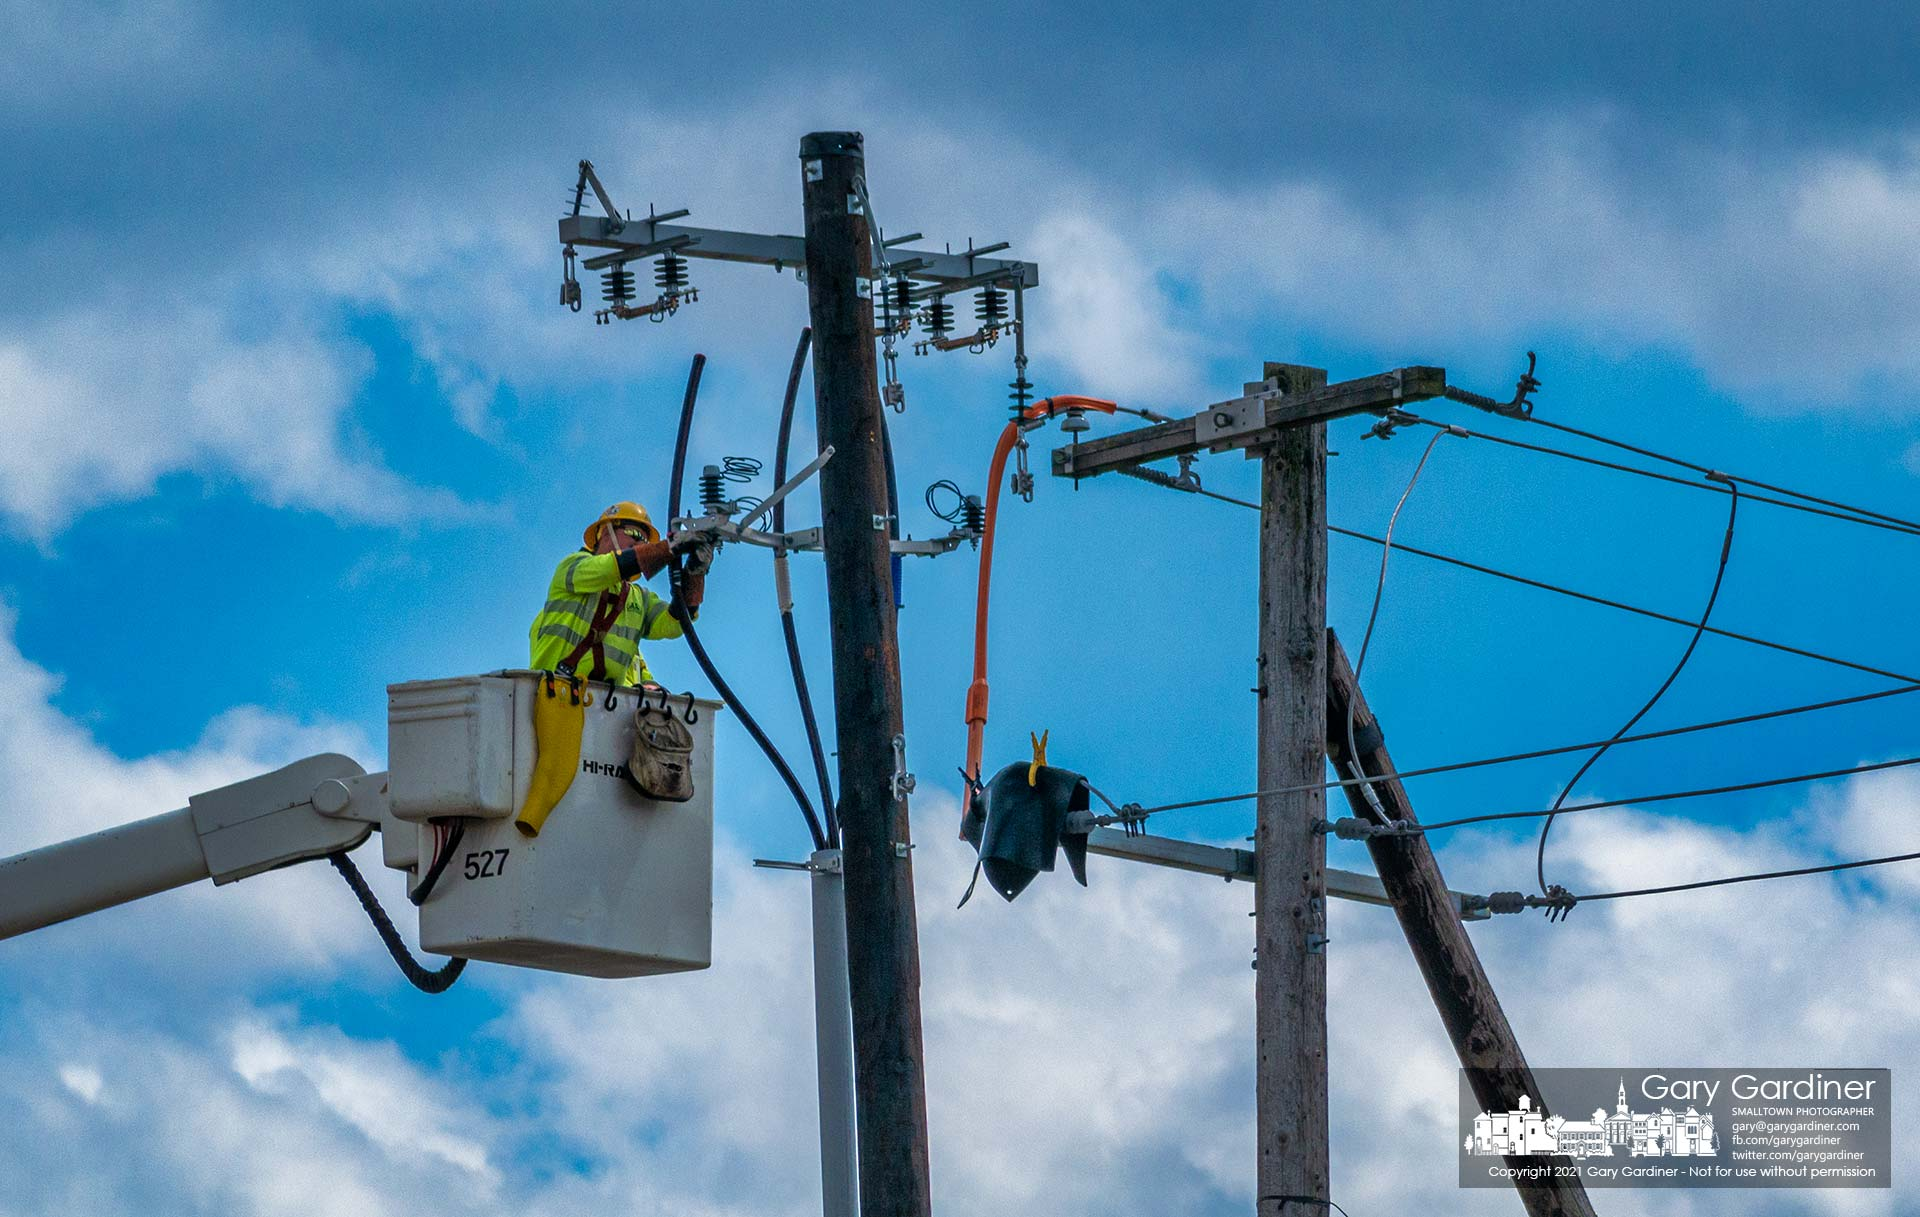 A city electrical worker installs new cables that will direct power underground to the substation being upgraded on Collegeview Ave. My Final Photo for March 24, 2021.